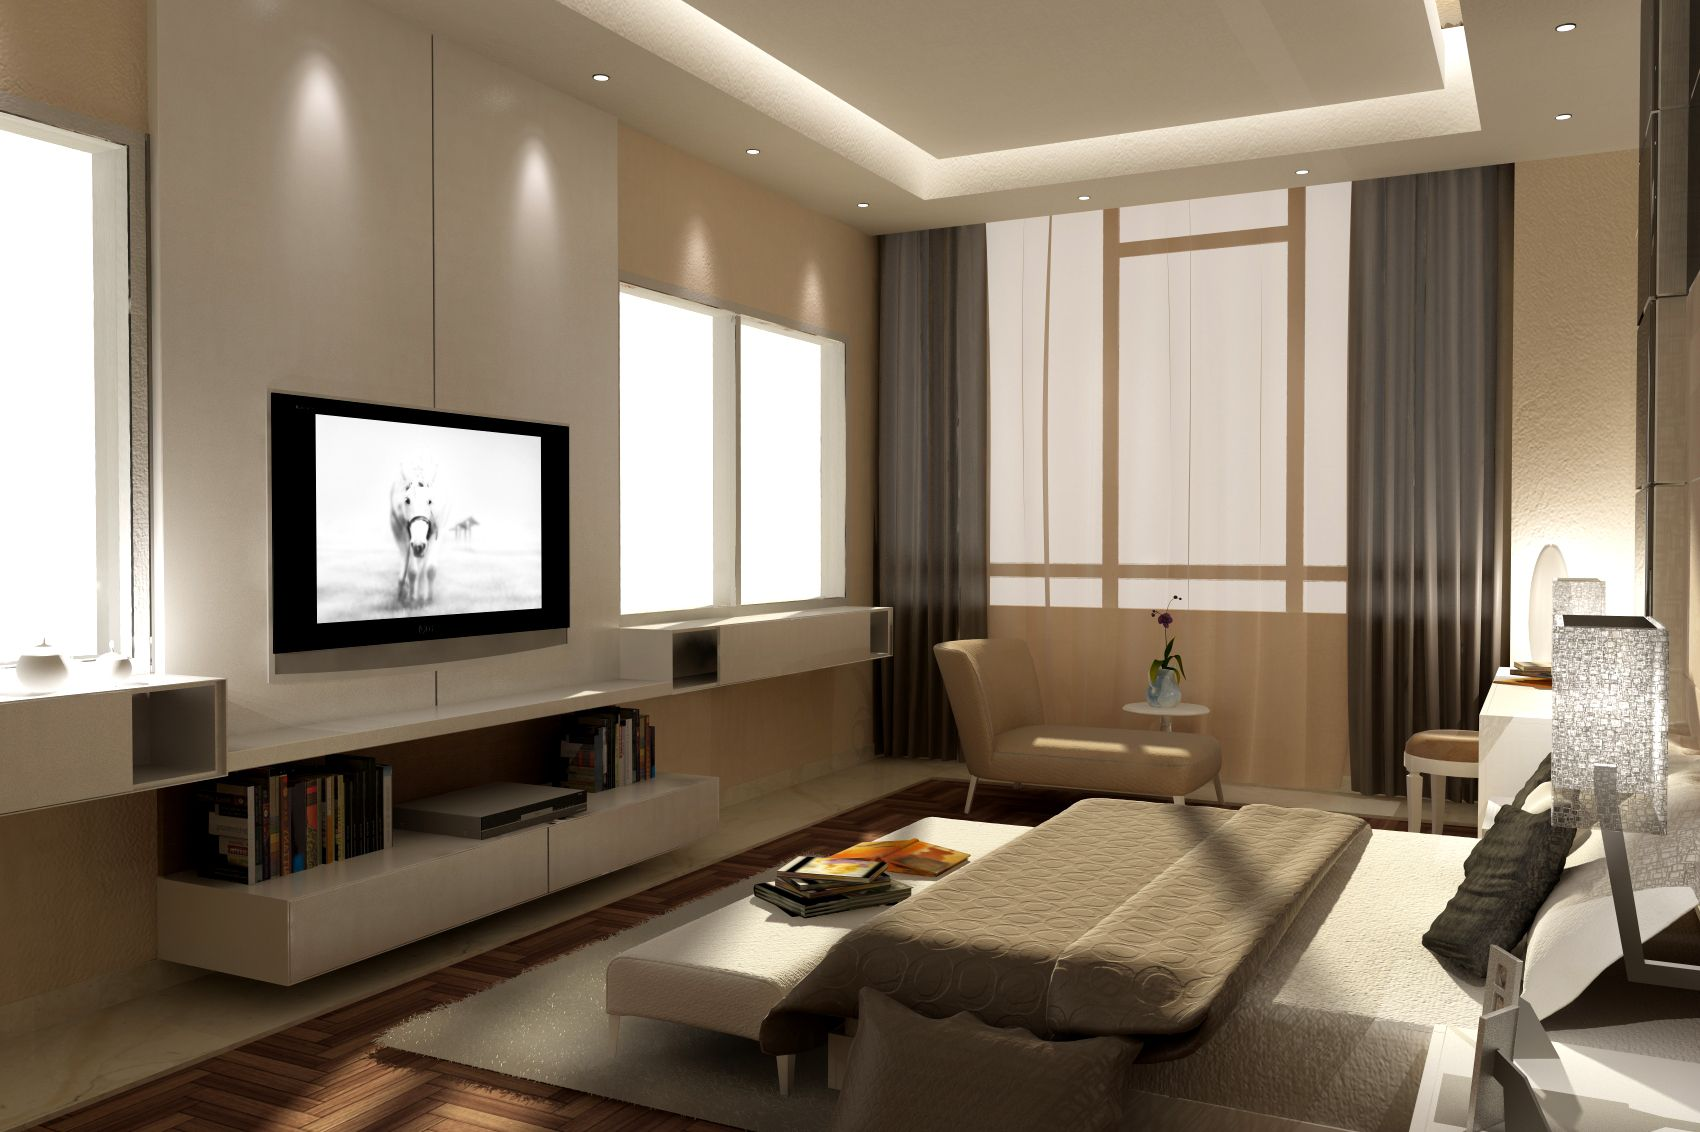 Bedroom Modern Bedroom Interior Design 3d Max 3d